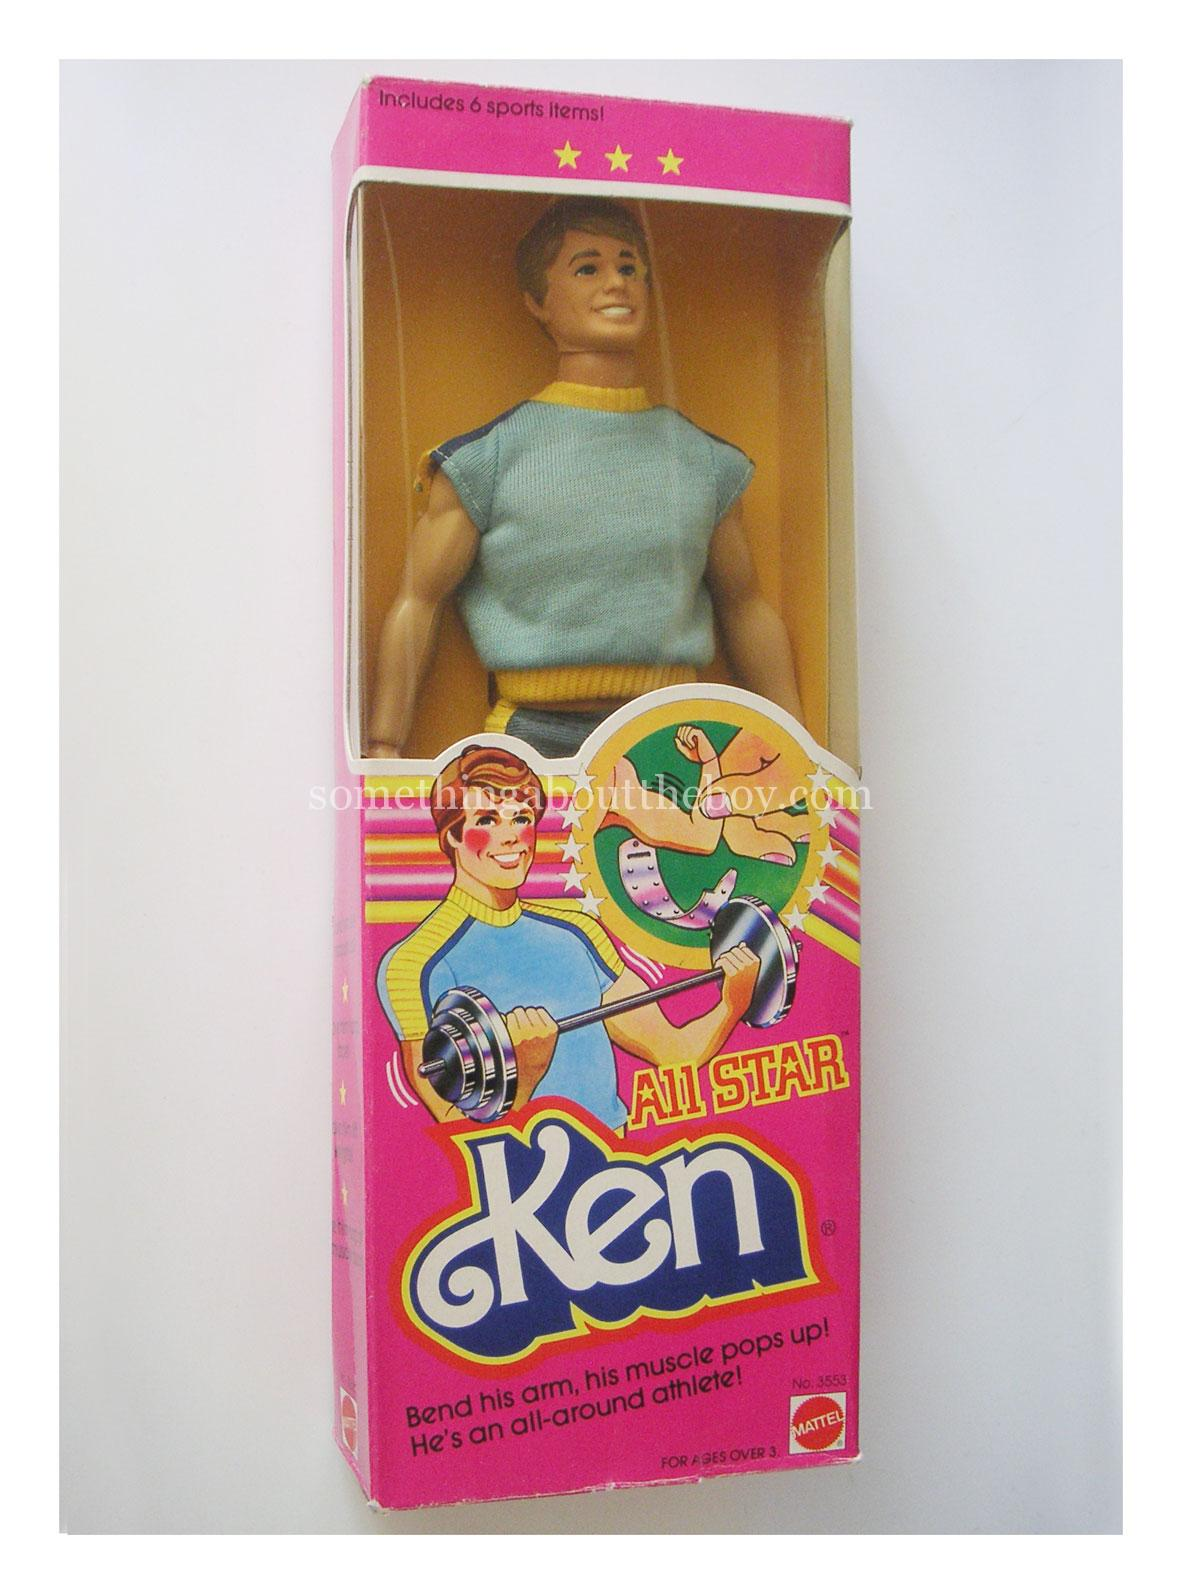 1982 #3553 All Star Ken in original packaging